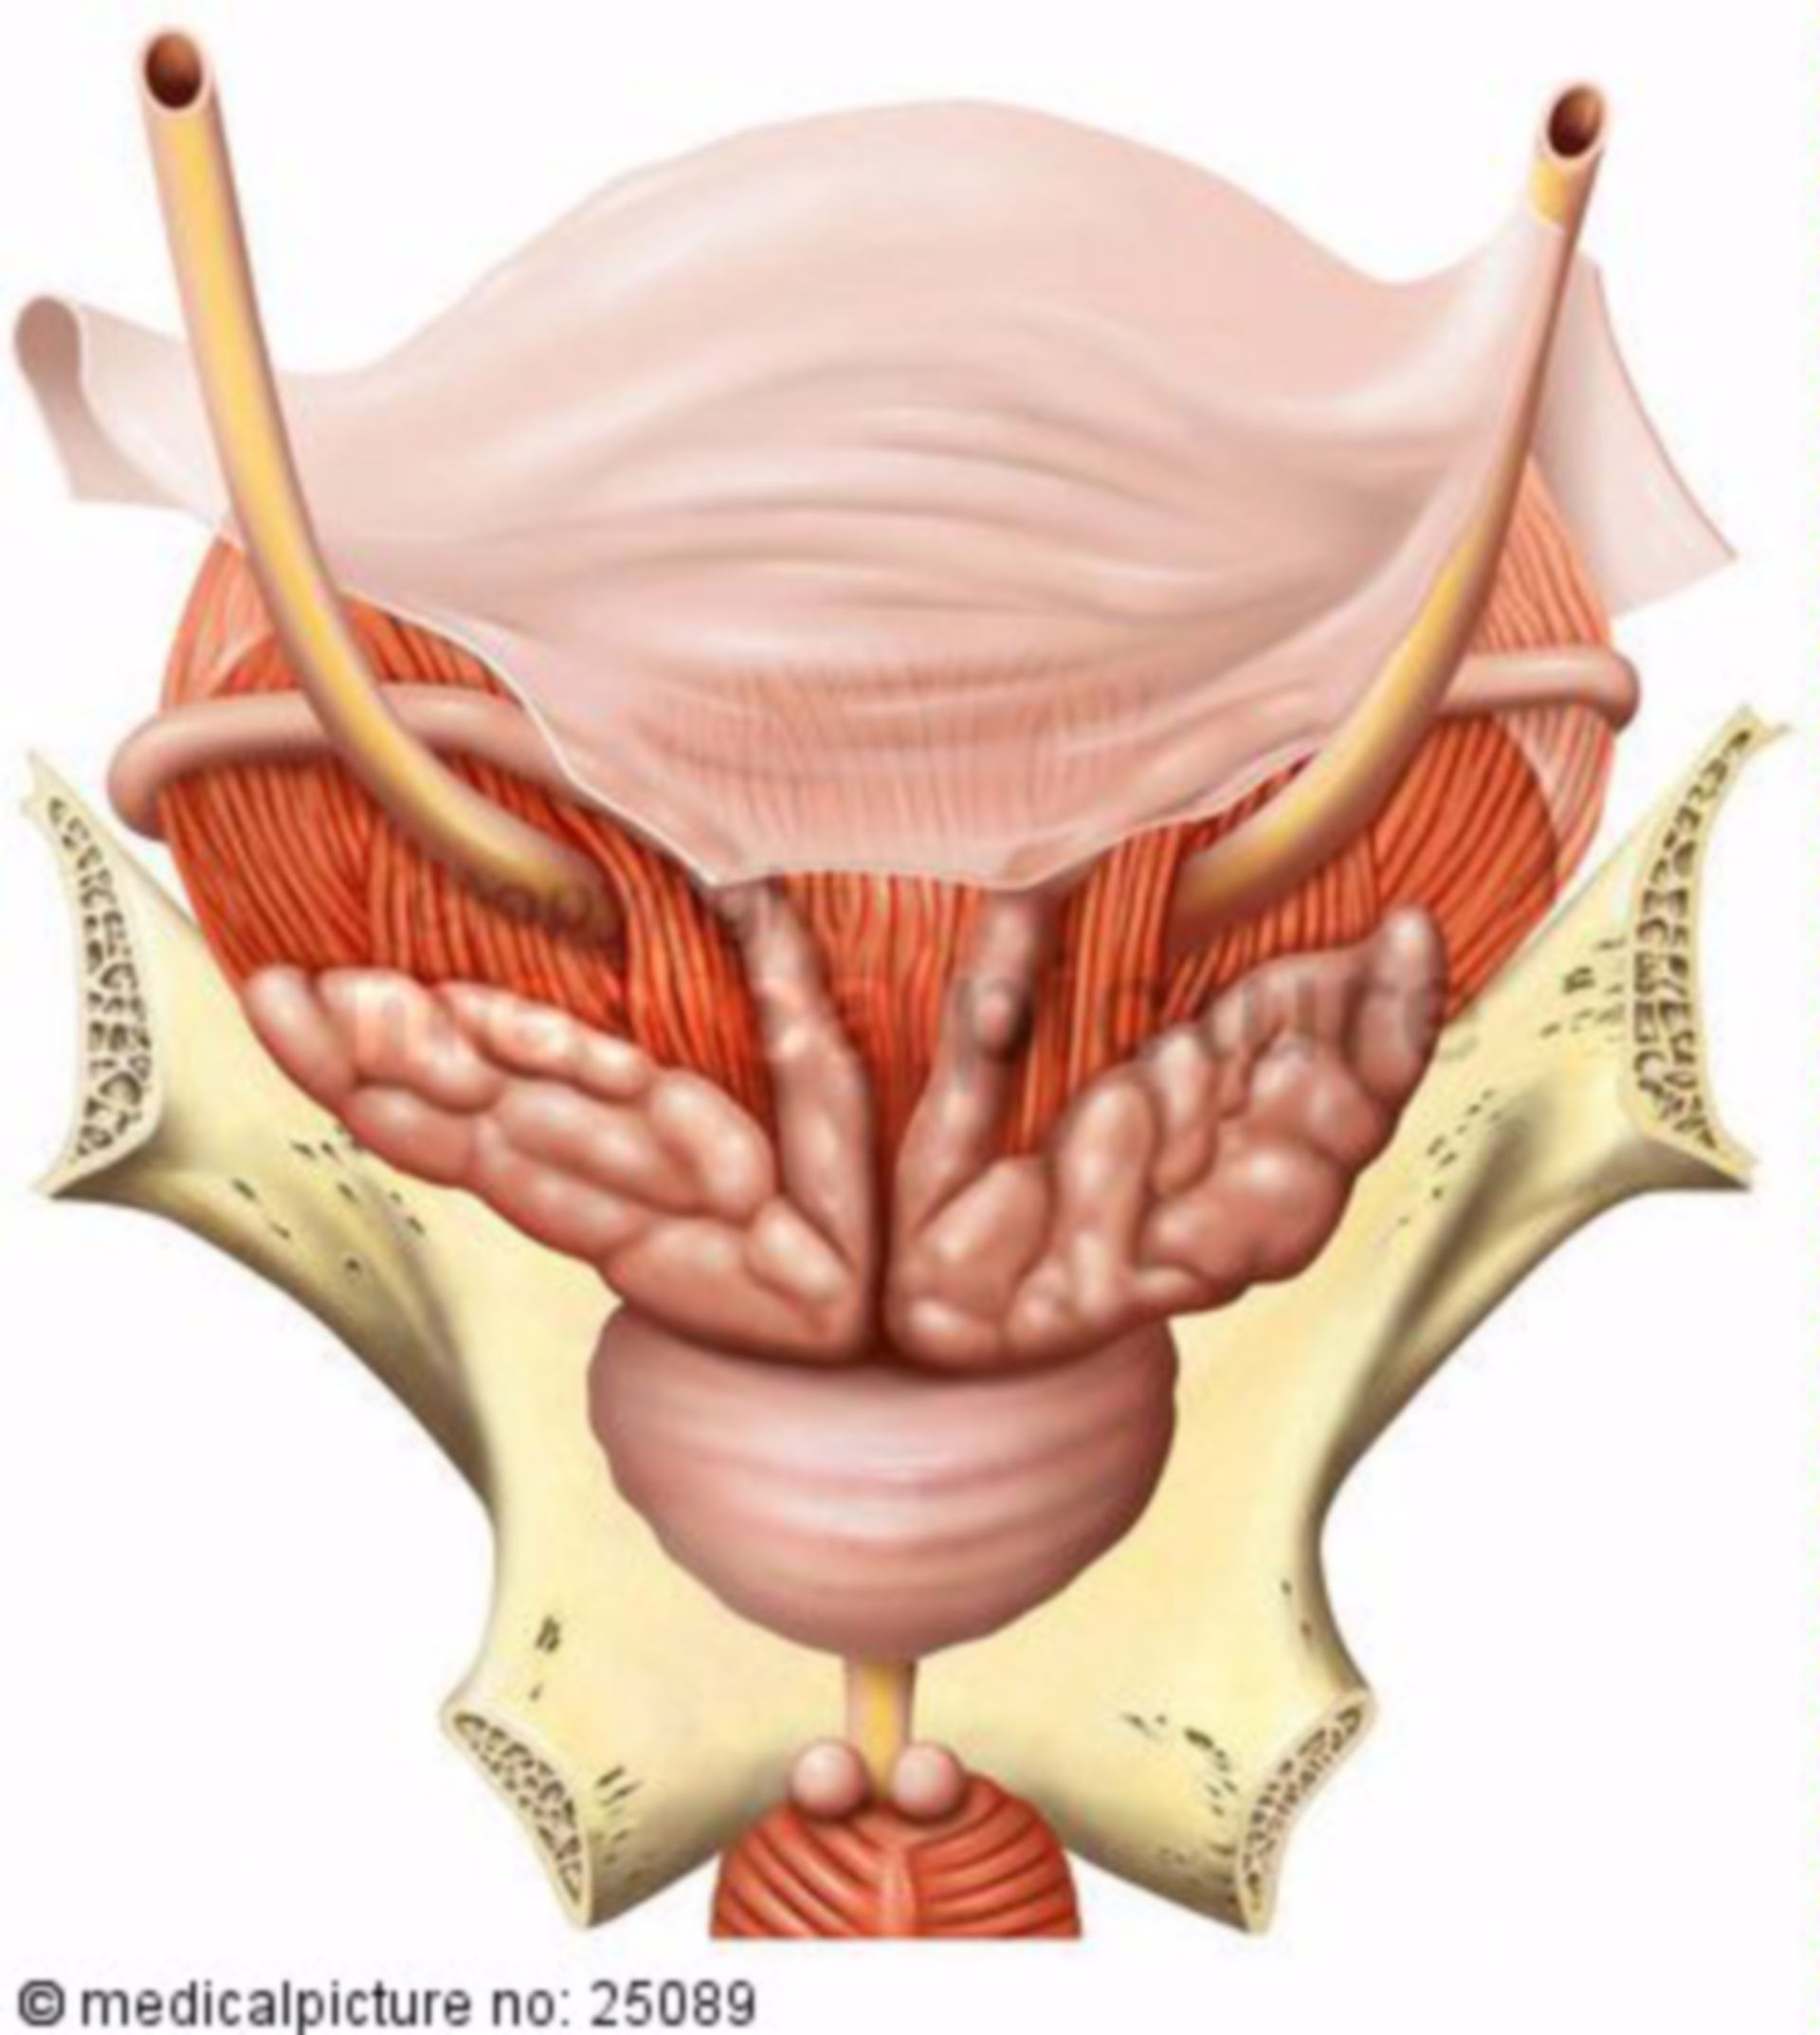 Posterior View of Male Pelvic Organs